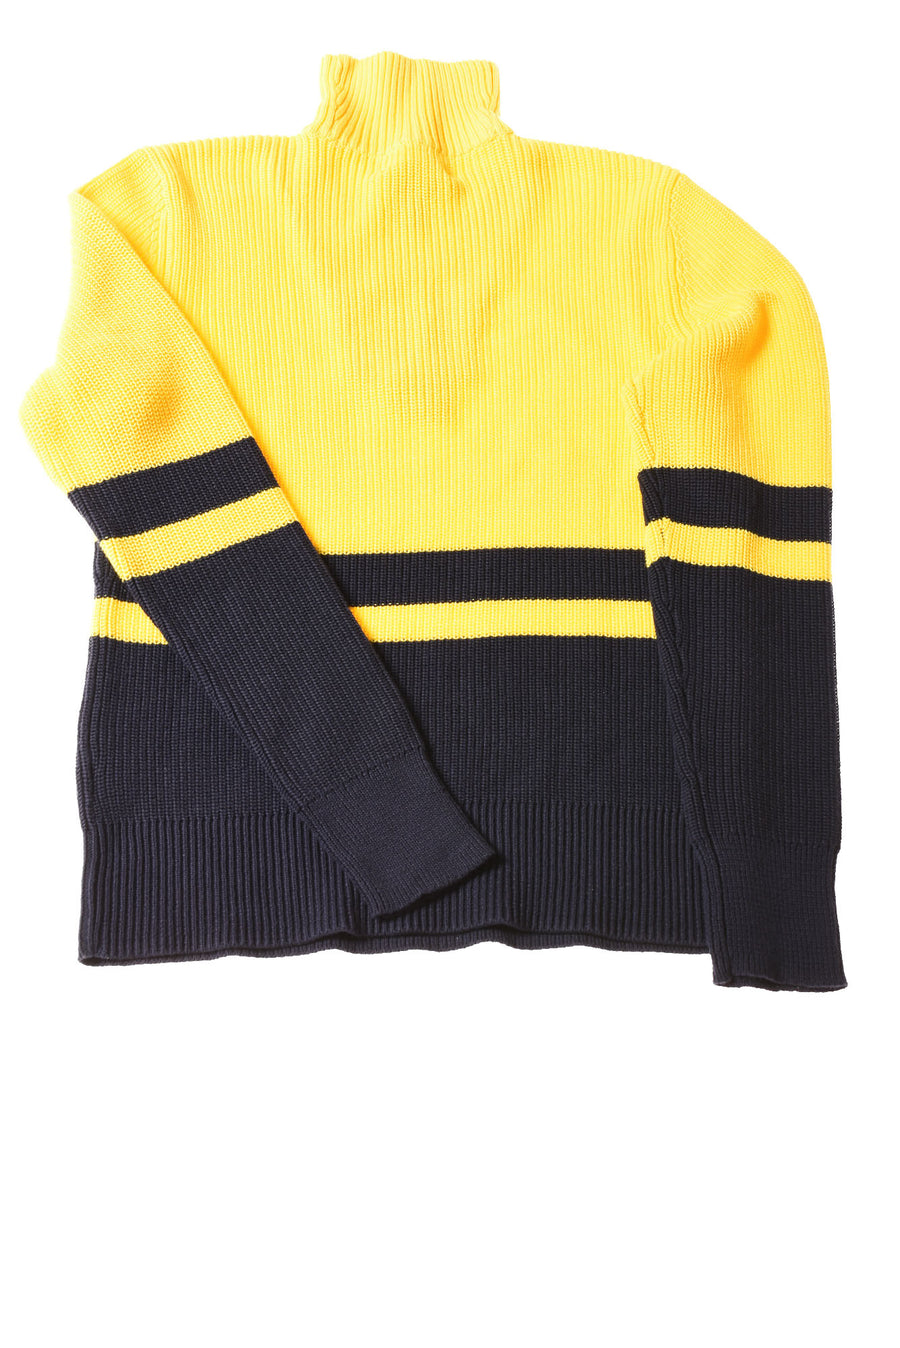 NEW Ralph Lauren Women's Sweater Medium Yellow / Navy Striped